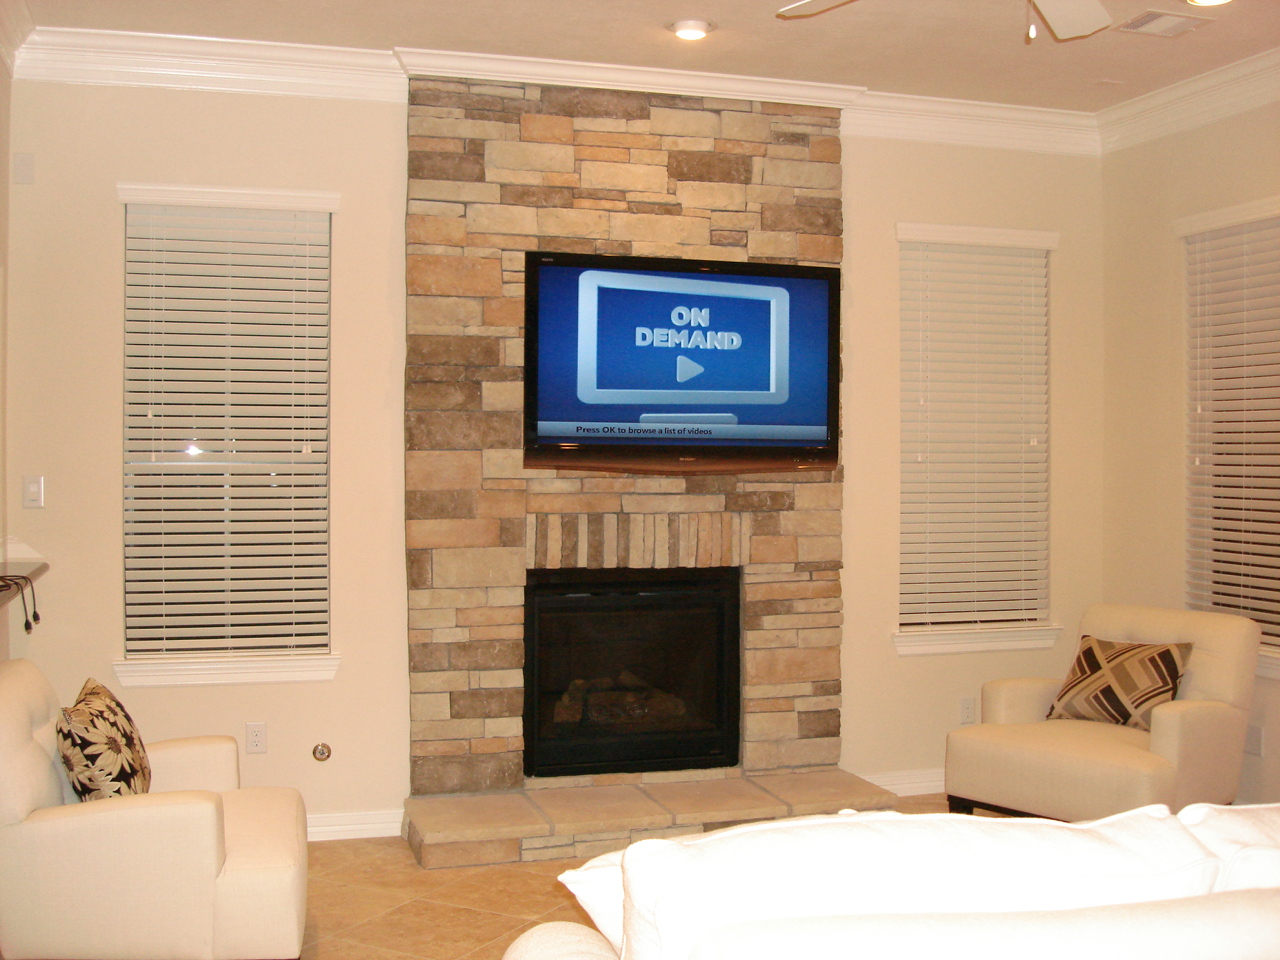 Wall Mount Tv Above Fireplace Decorating Interior Of Your House Wiring Installation Houston Home Theater Installing Over